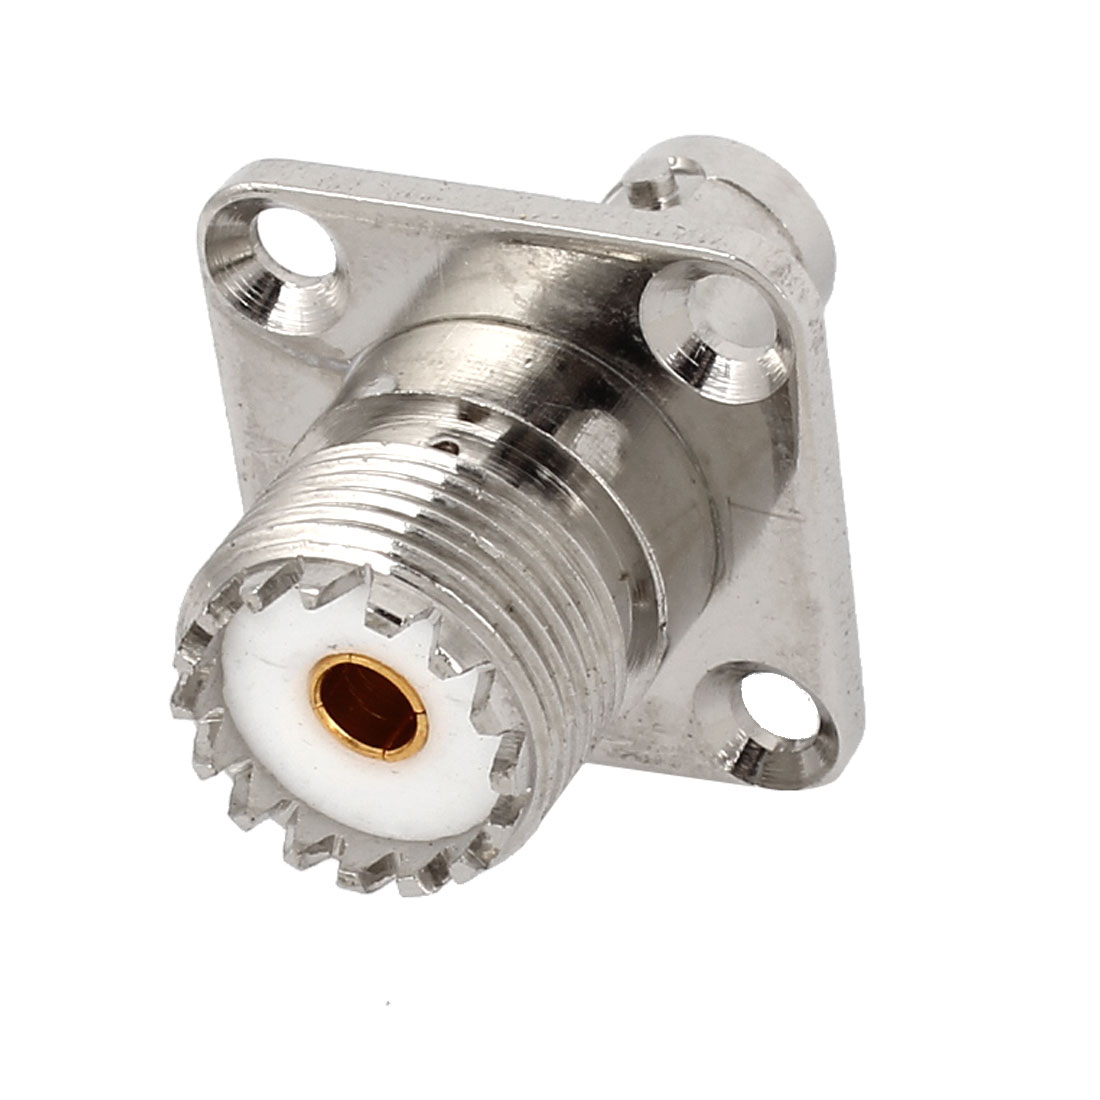 BNC Female to UHF Female Jack 4 Hole Panel Mount RF Adapter Connector